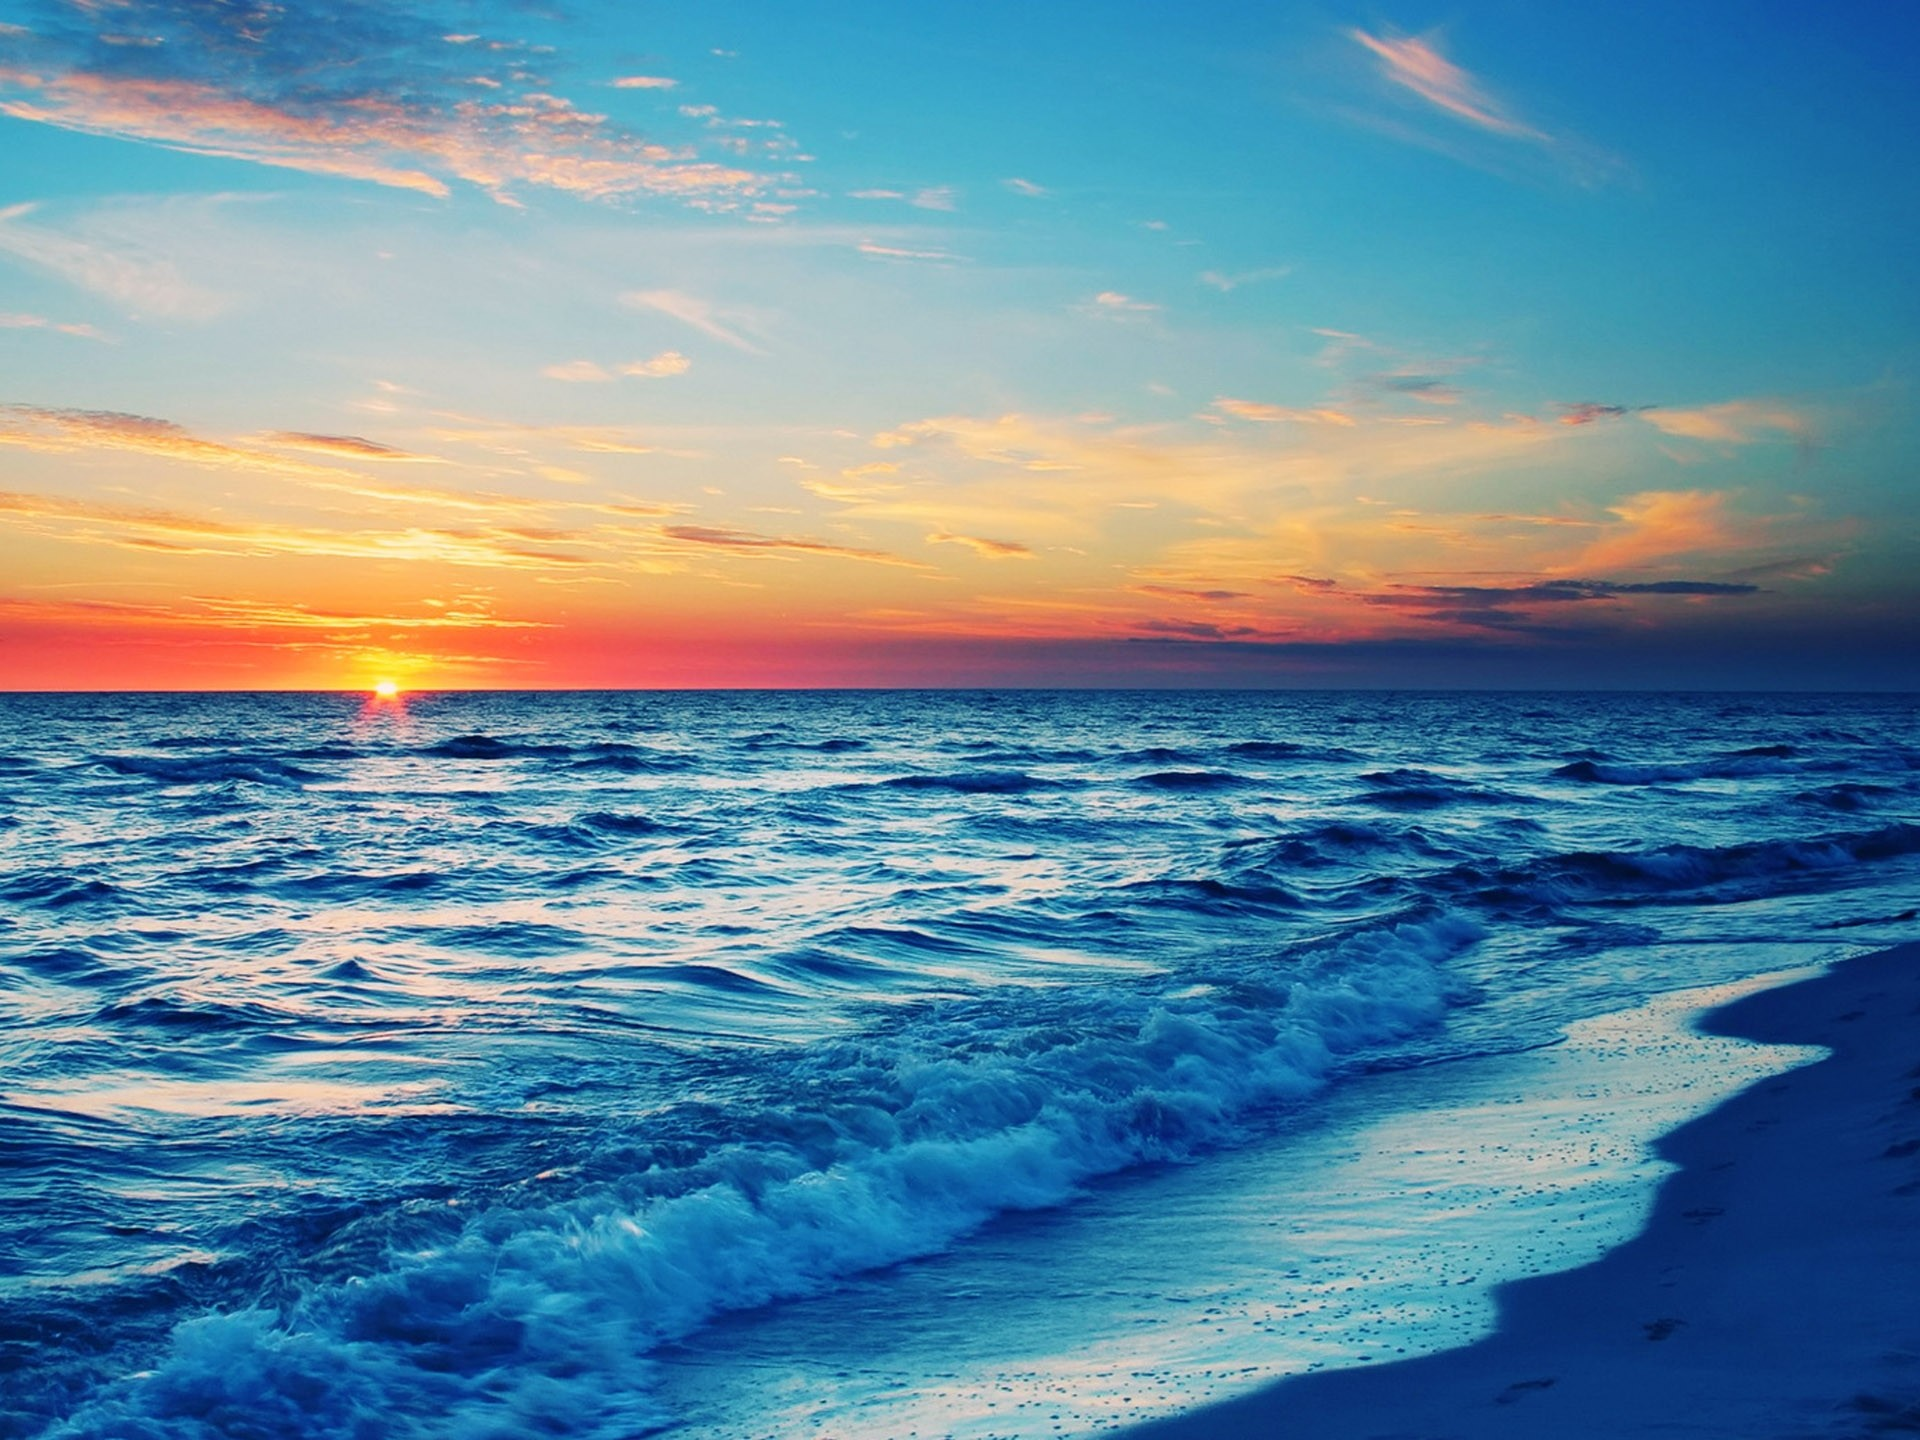 Most Beautiful Beaches Wallpapers